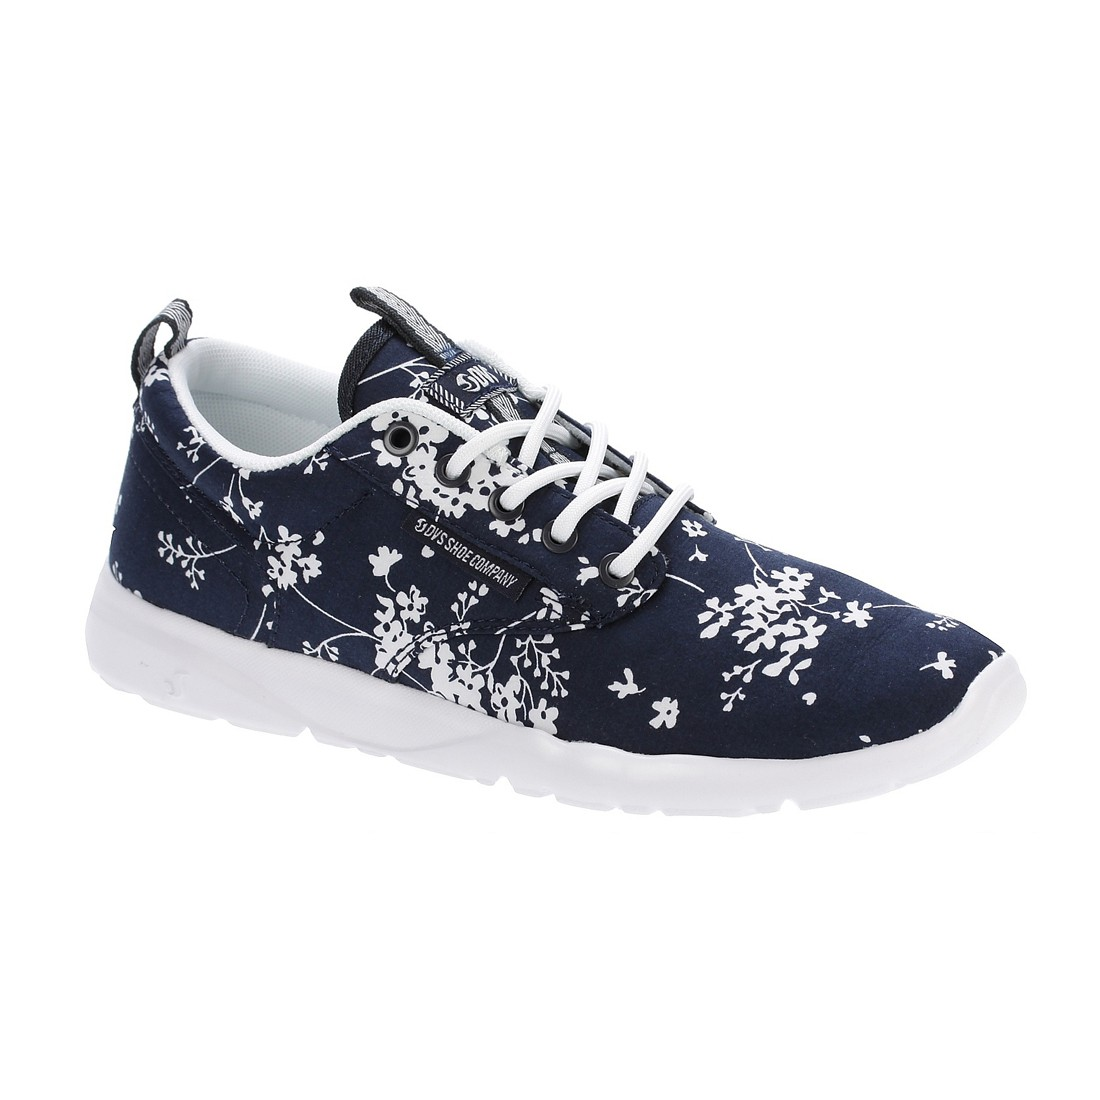 PREMIER 2.0 wos white navy blossom canvas